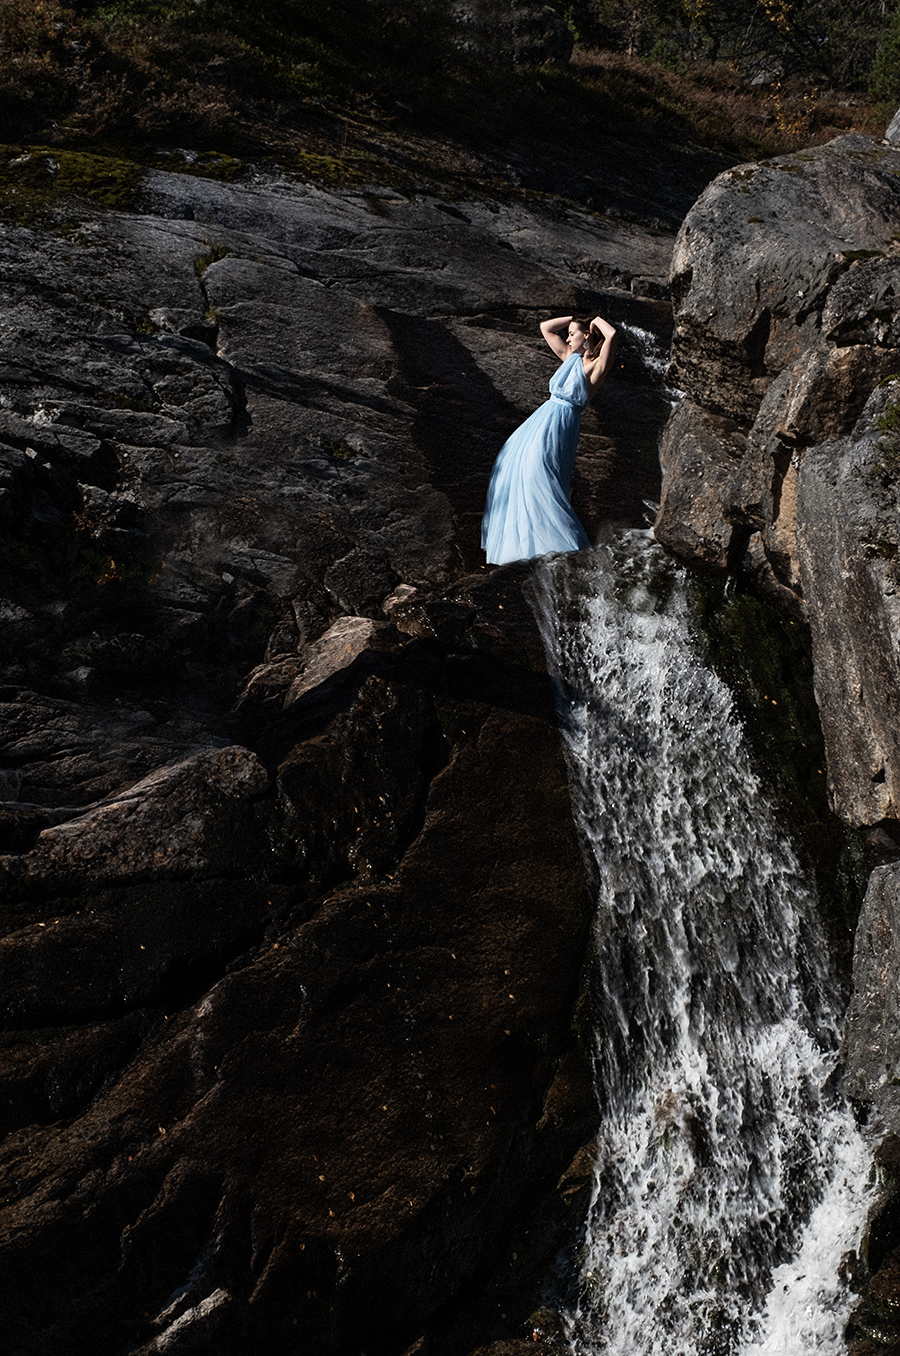 Waterfall fashion / Photography by JPea, Model Keira Lavelle, Post processing by JPea, Taken at Keira Lavelle / Uploaded 9th October 2021 @ 06:33 PM